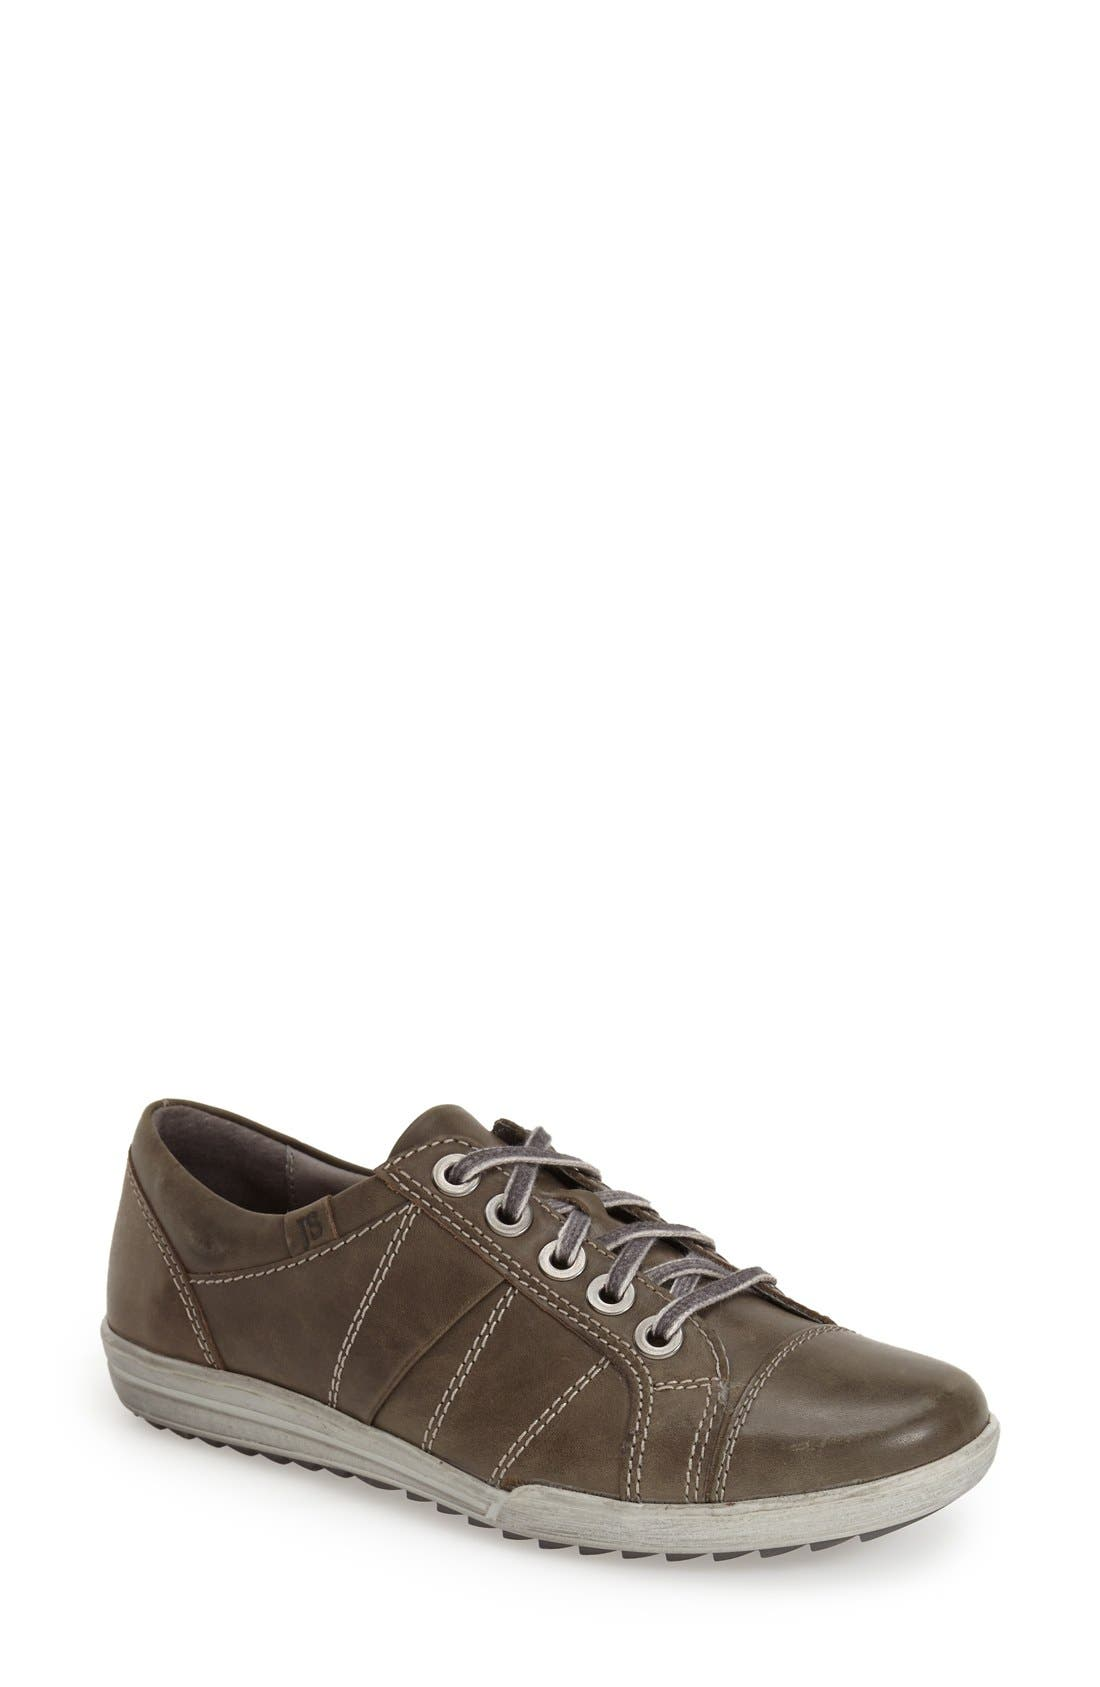 'Dany 05' Leather Sneaker,                         Main,                         color, Grigio